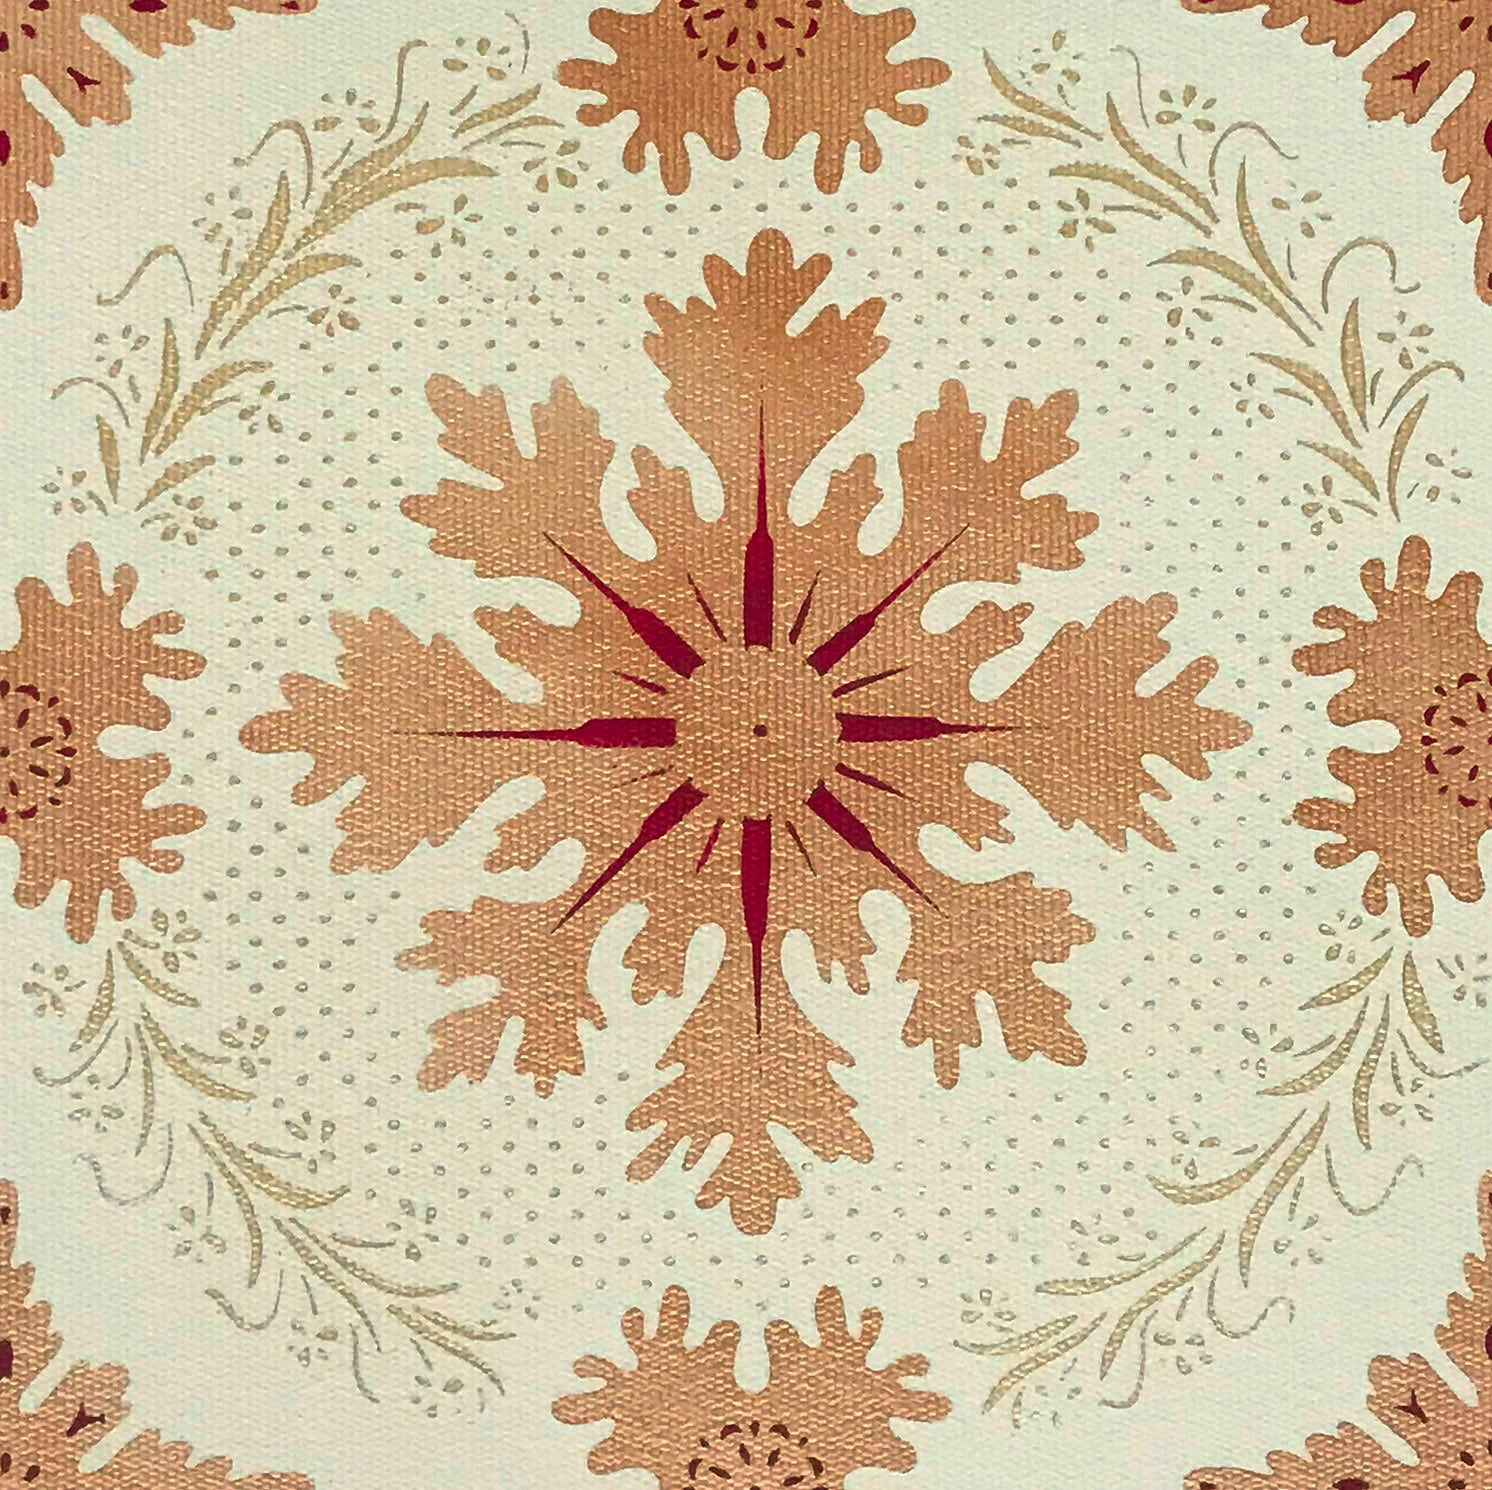 Close up image of this truly unusual pattern.